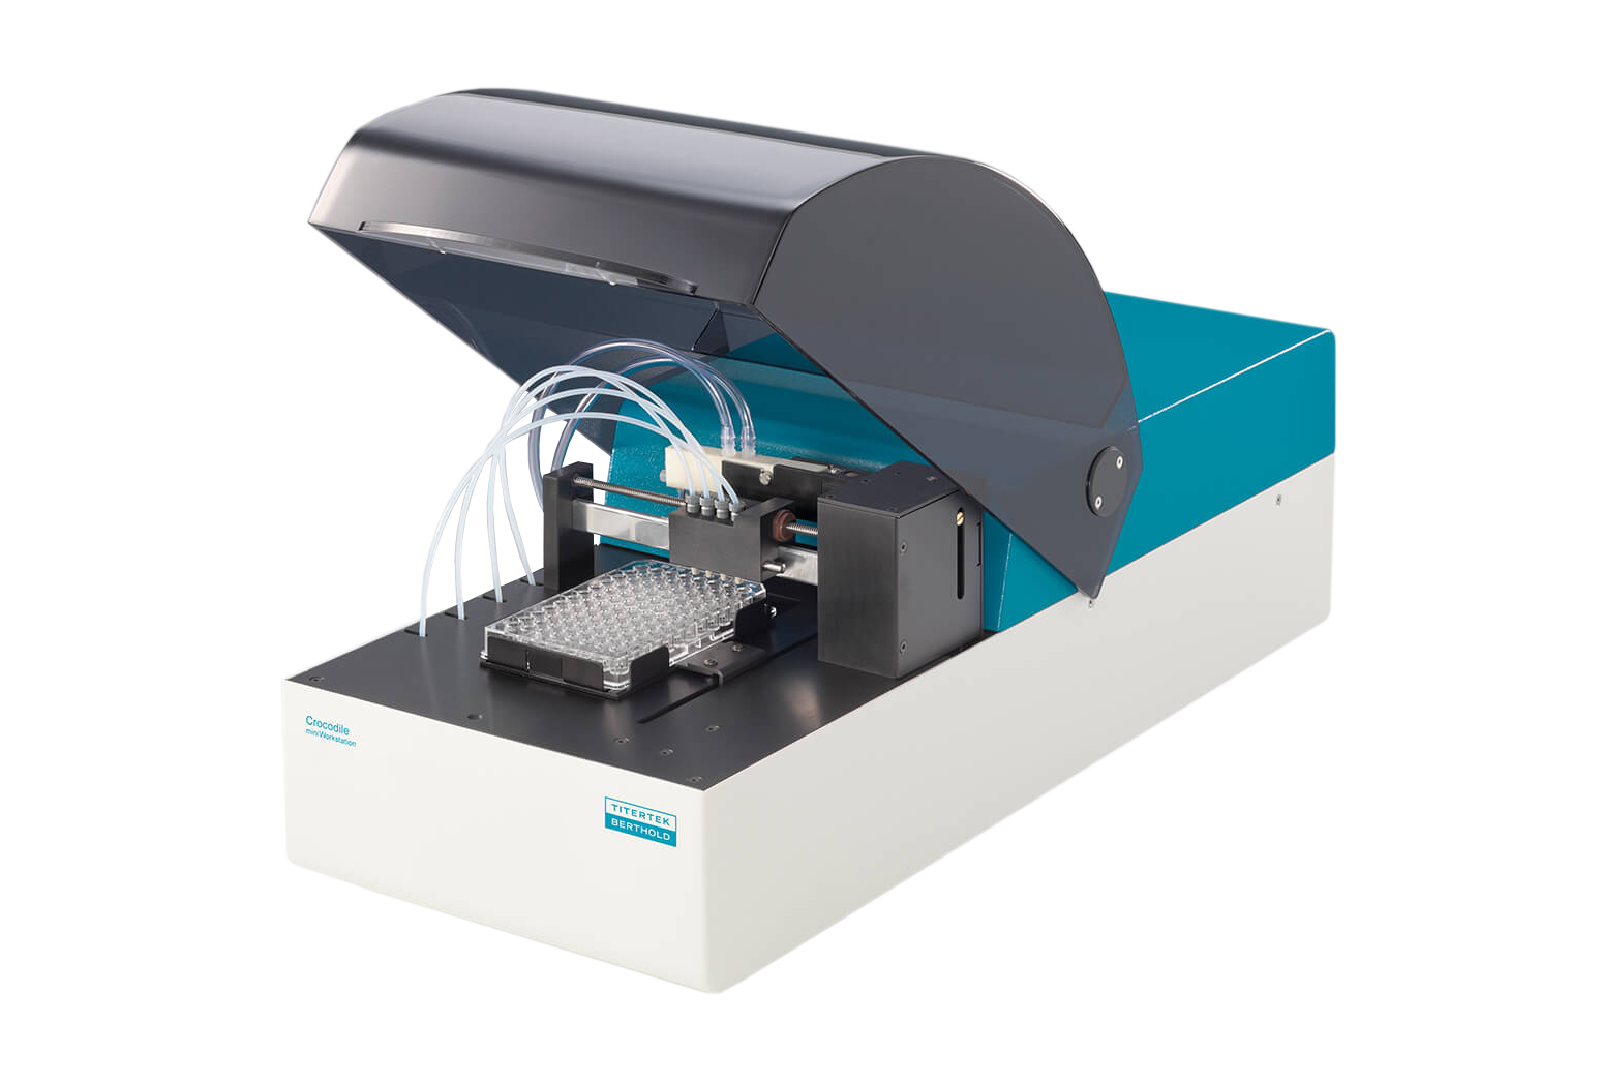 Personal workstation instrument to automate microplate assays to dispense, wash, shake and incubate.